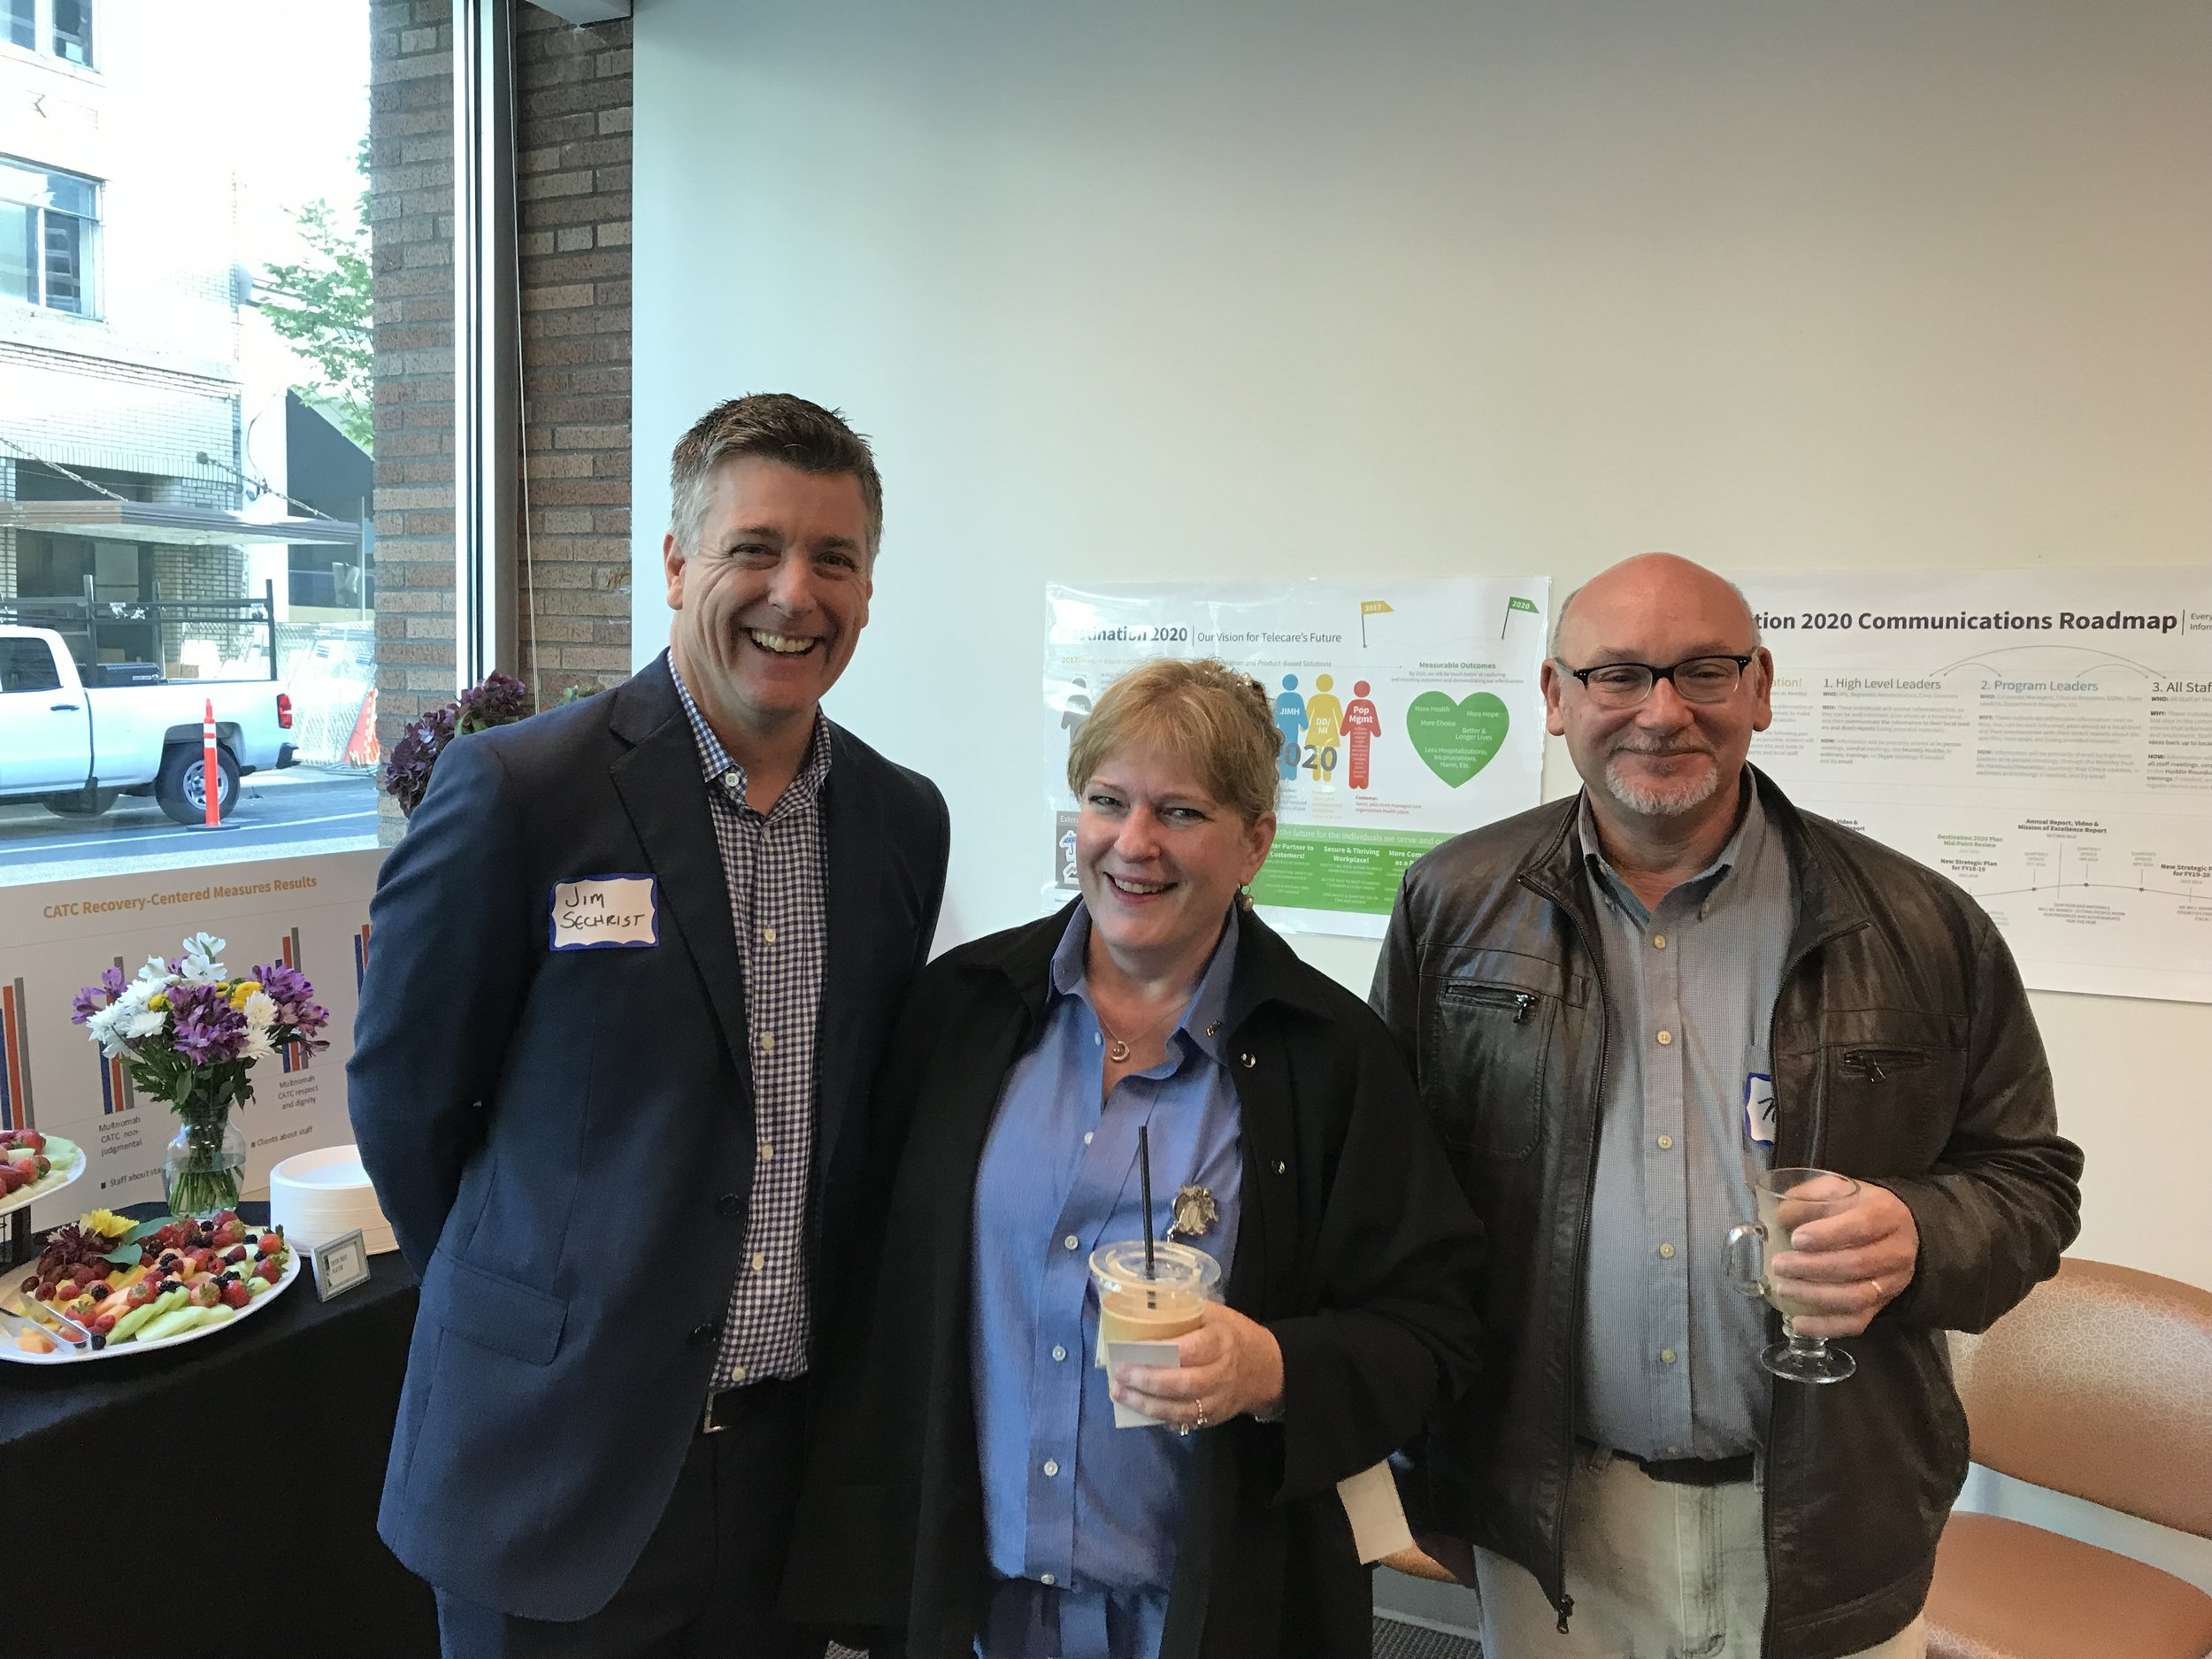 Jim Sechrist, Regional Director of Operations at Telecare; Andrea Shetzline; Neal Rotman, Interim Deputy Director, Multnomah County MH and Addiction